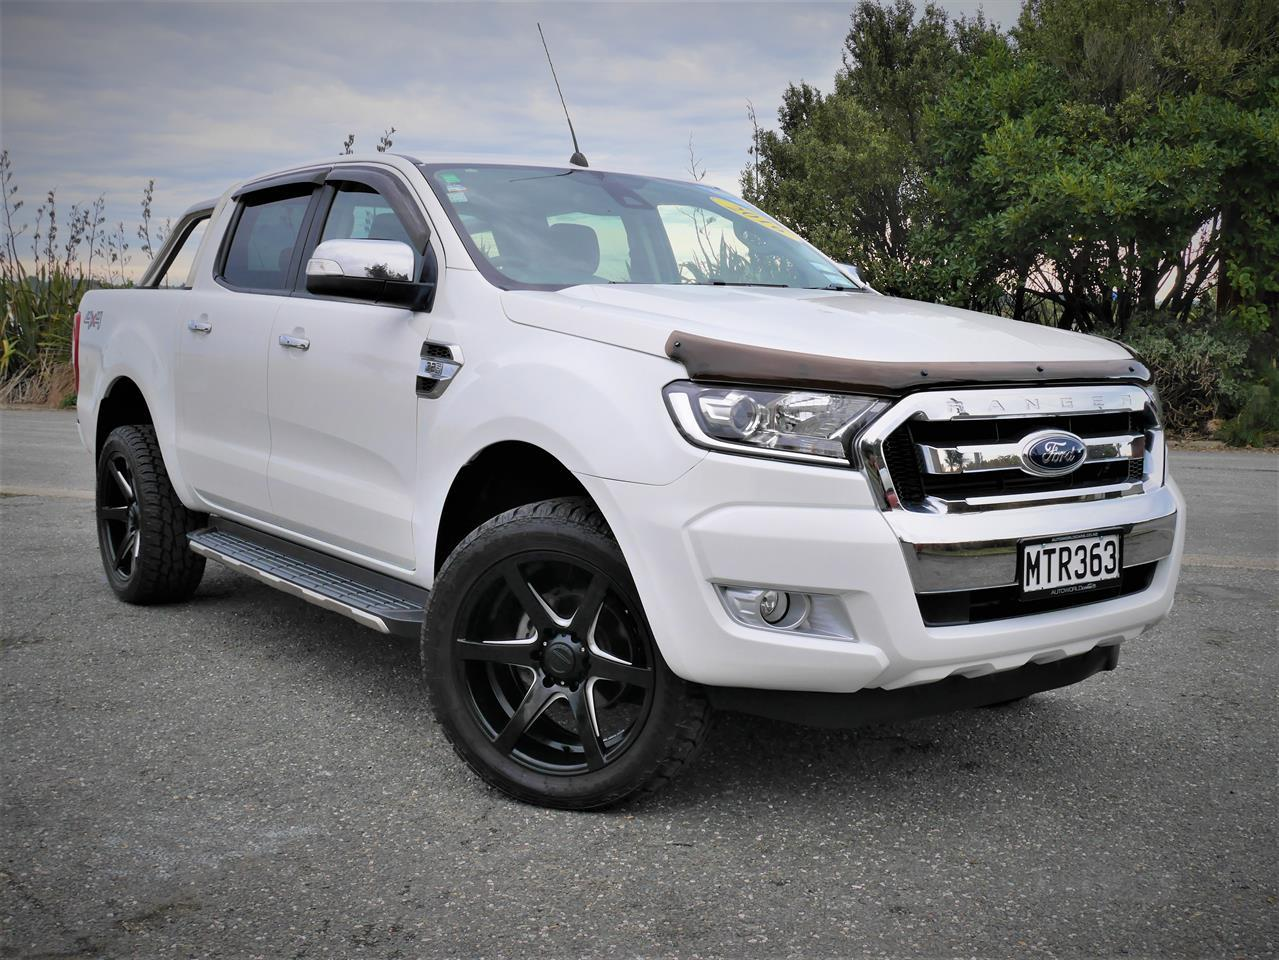 image-0, 2016 FORD RANGER XLT 3.2TD 4WD double cab at Invercargill